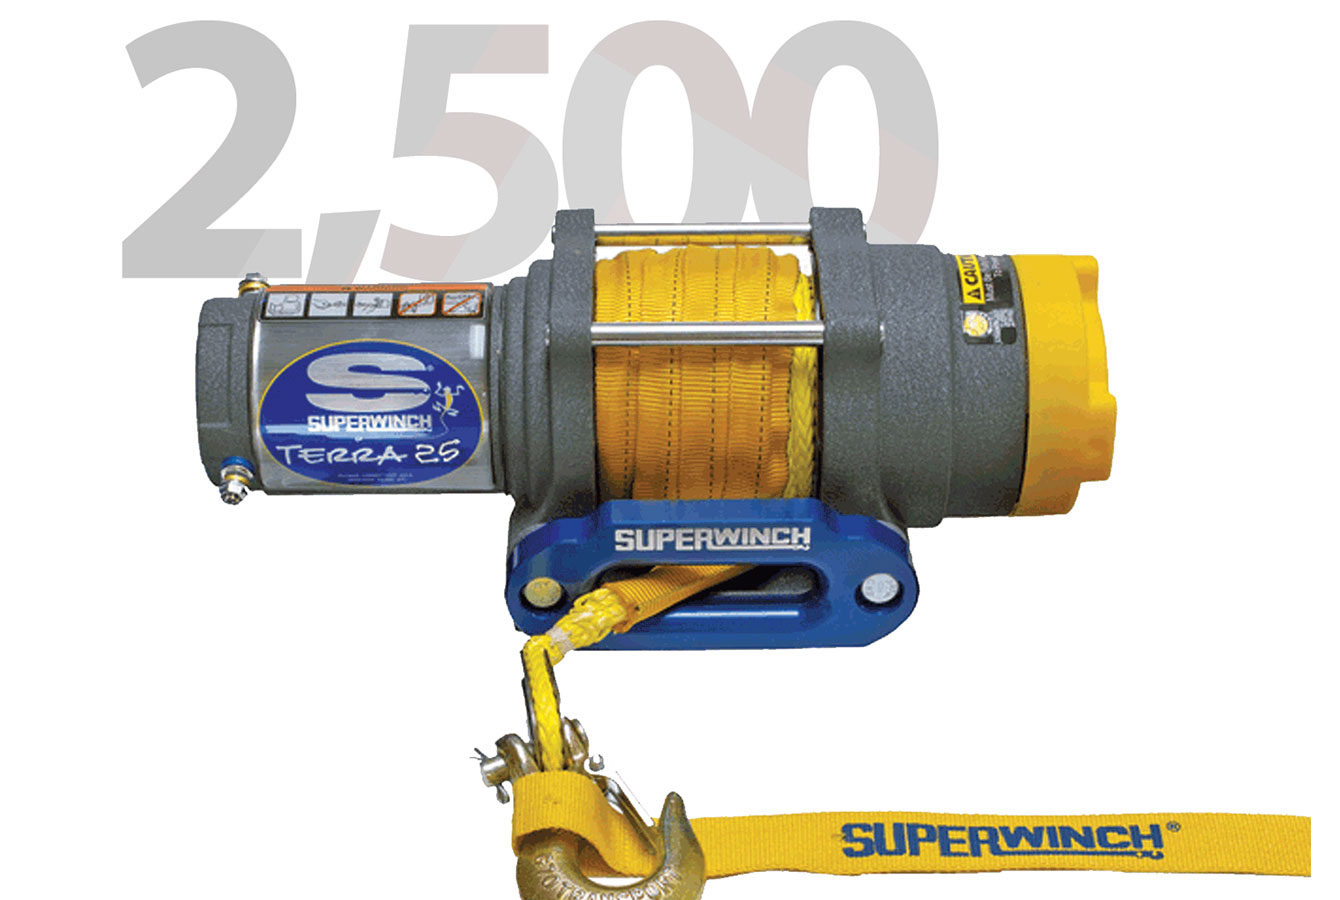 TERRA 2500LB SYNTHETIC ROPE